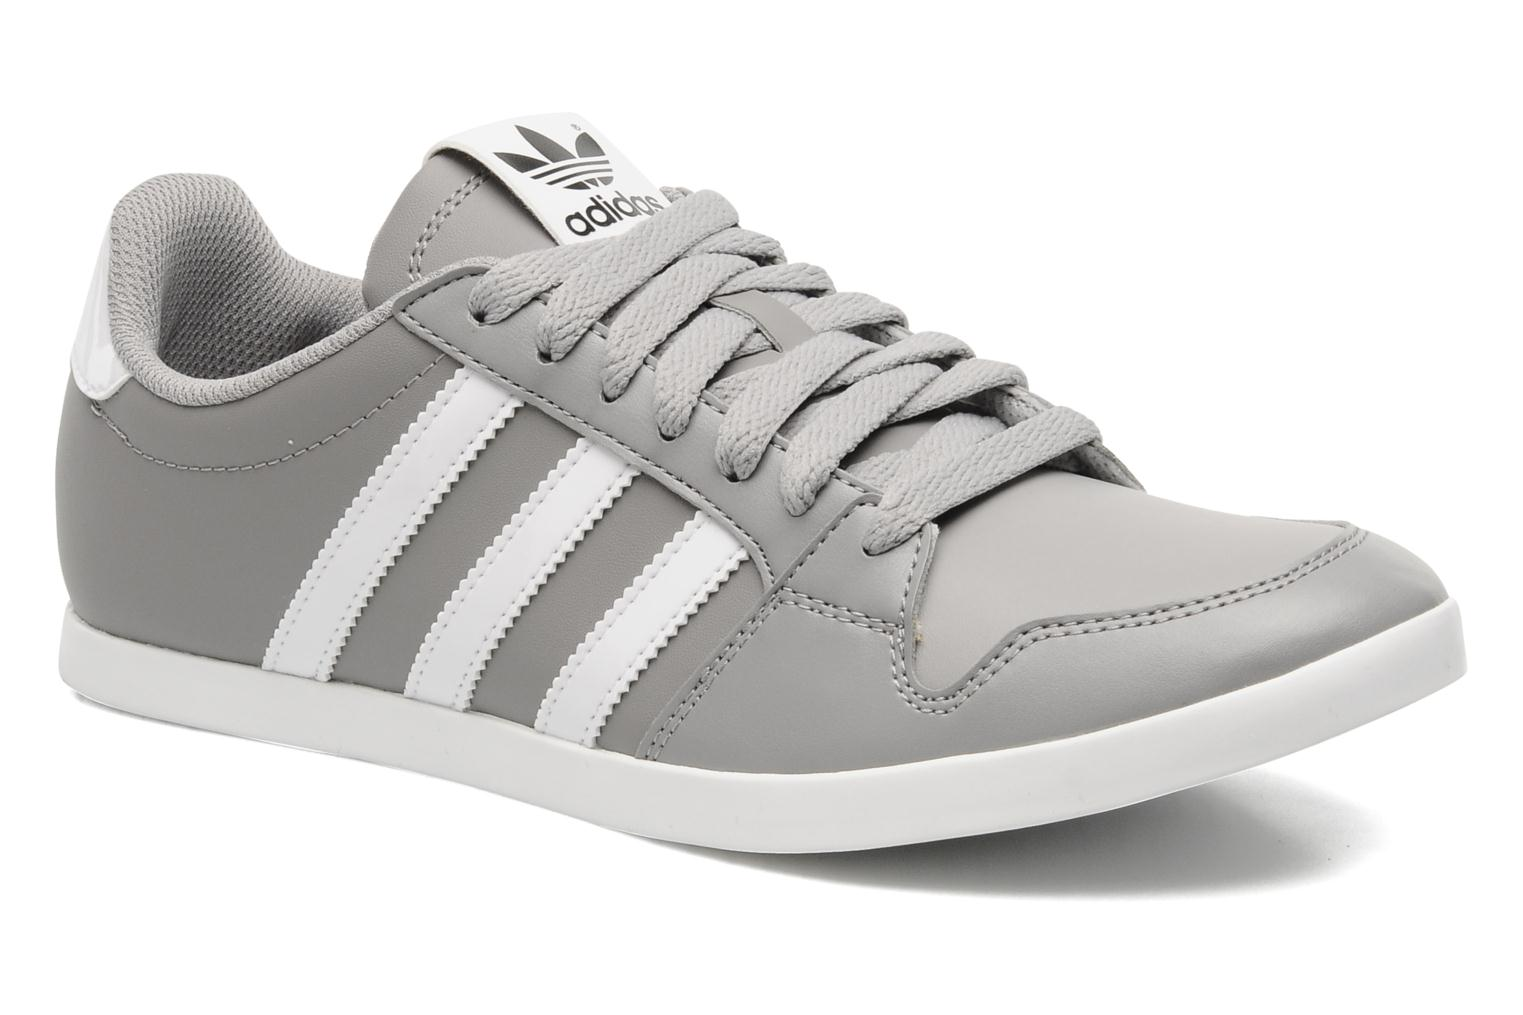 Low Baskets 117697 Adilago Originals gris Chez Sarenza Adidas RAPUq1wn